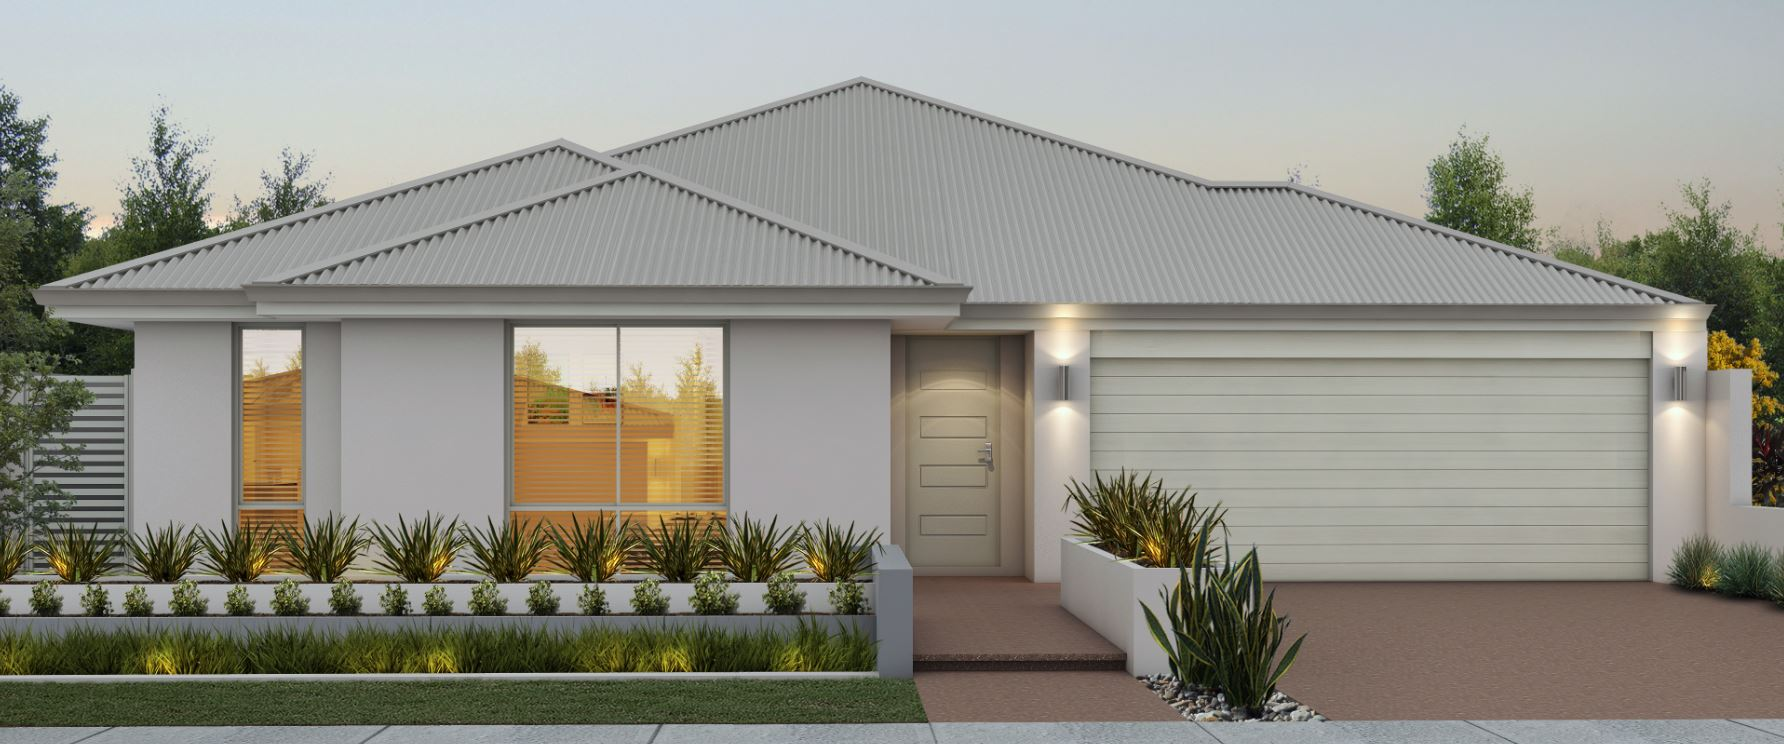 House and Land Package in Perth - Brabham, WA | My Homes WA